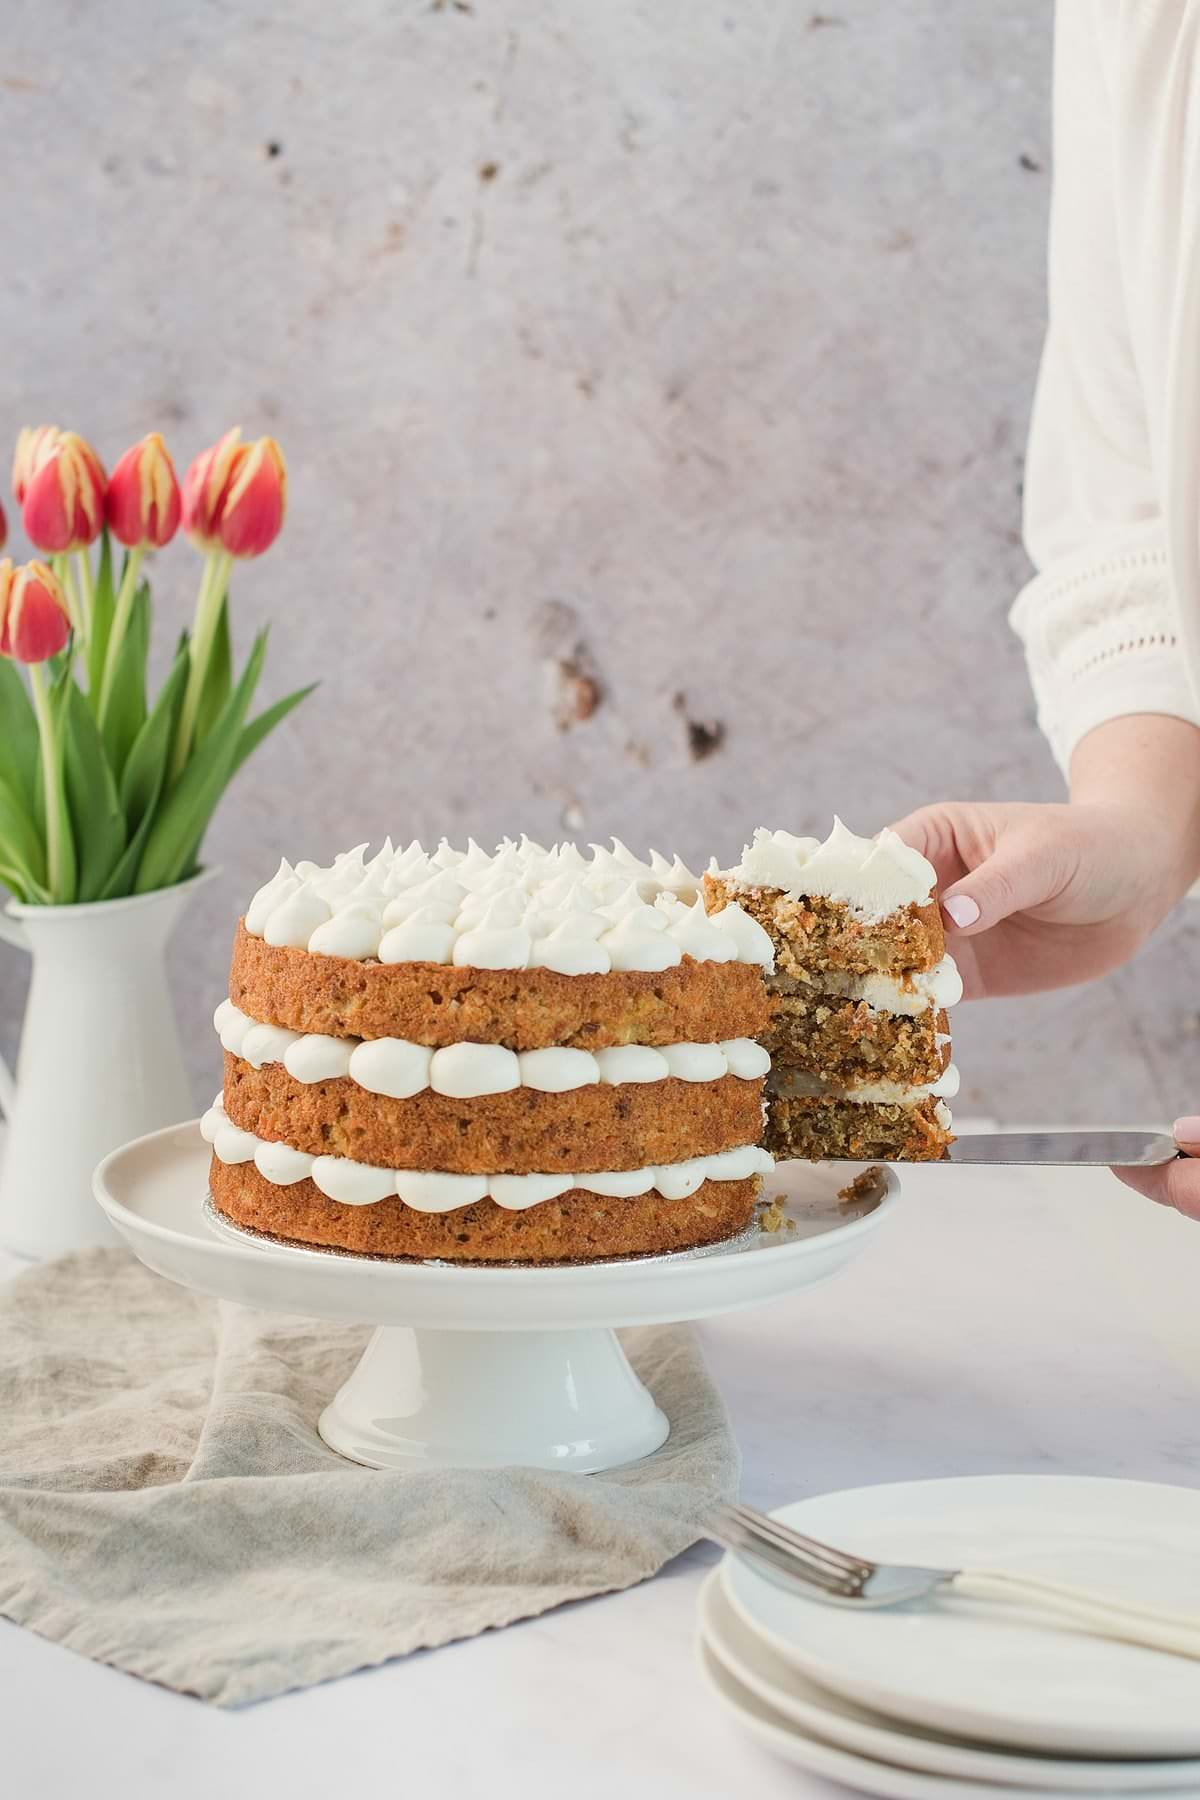 Frog Commissary Carrot Cake with Pecan Filling and Cream Cheese Frosting